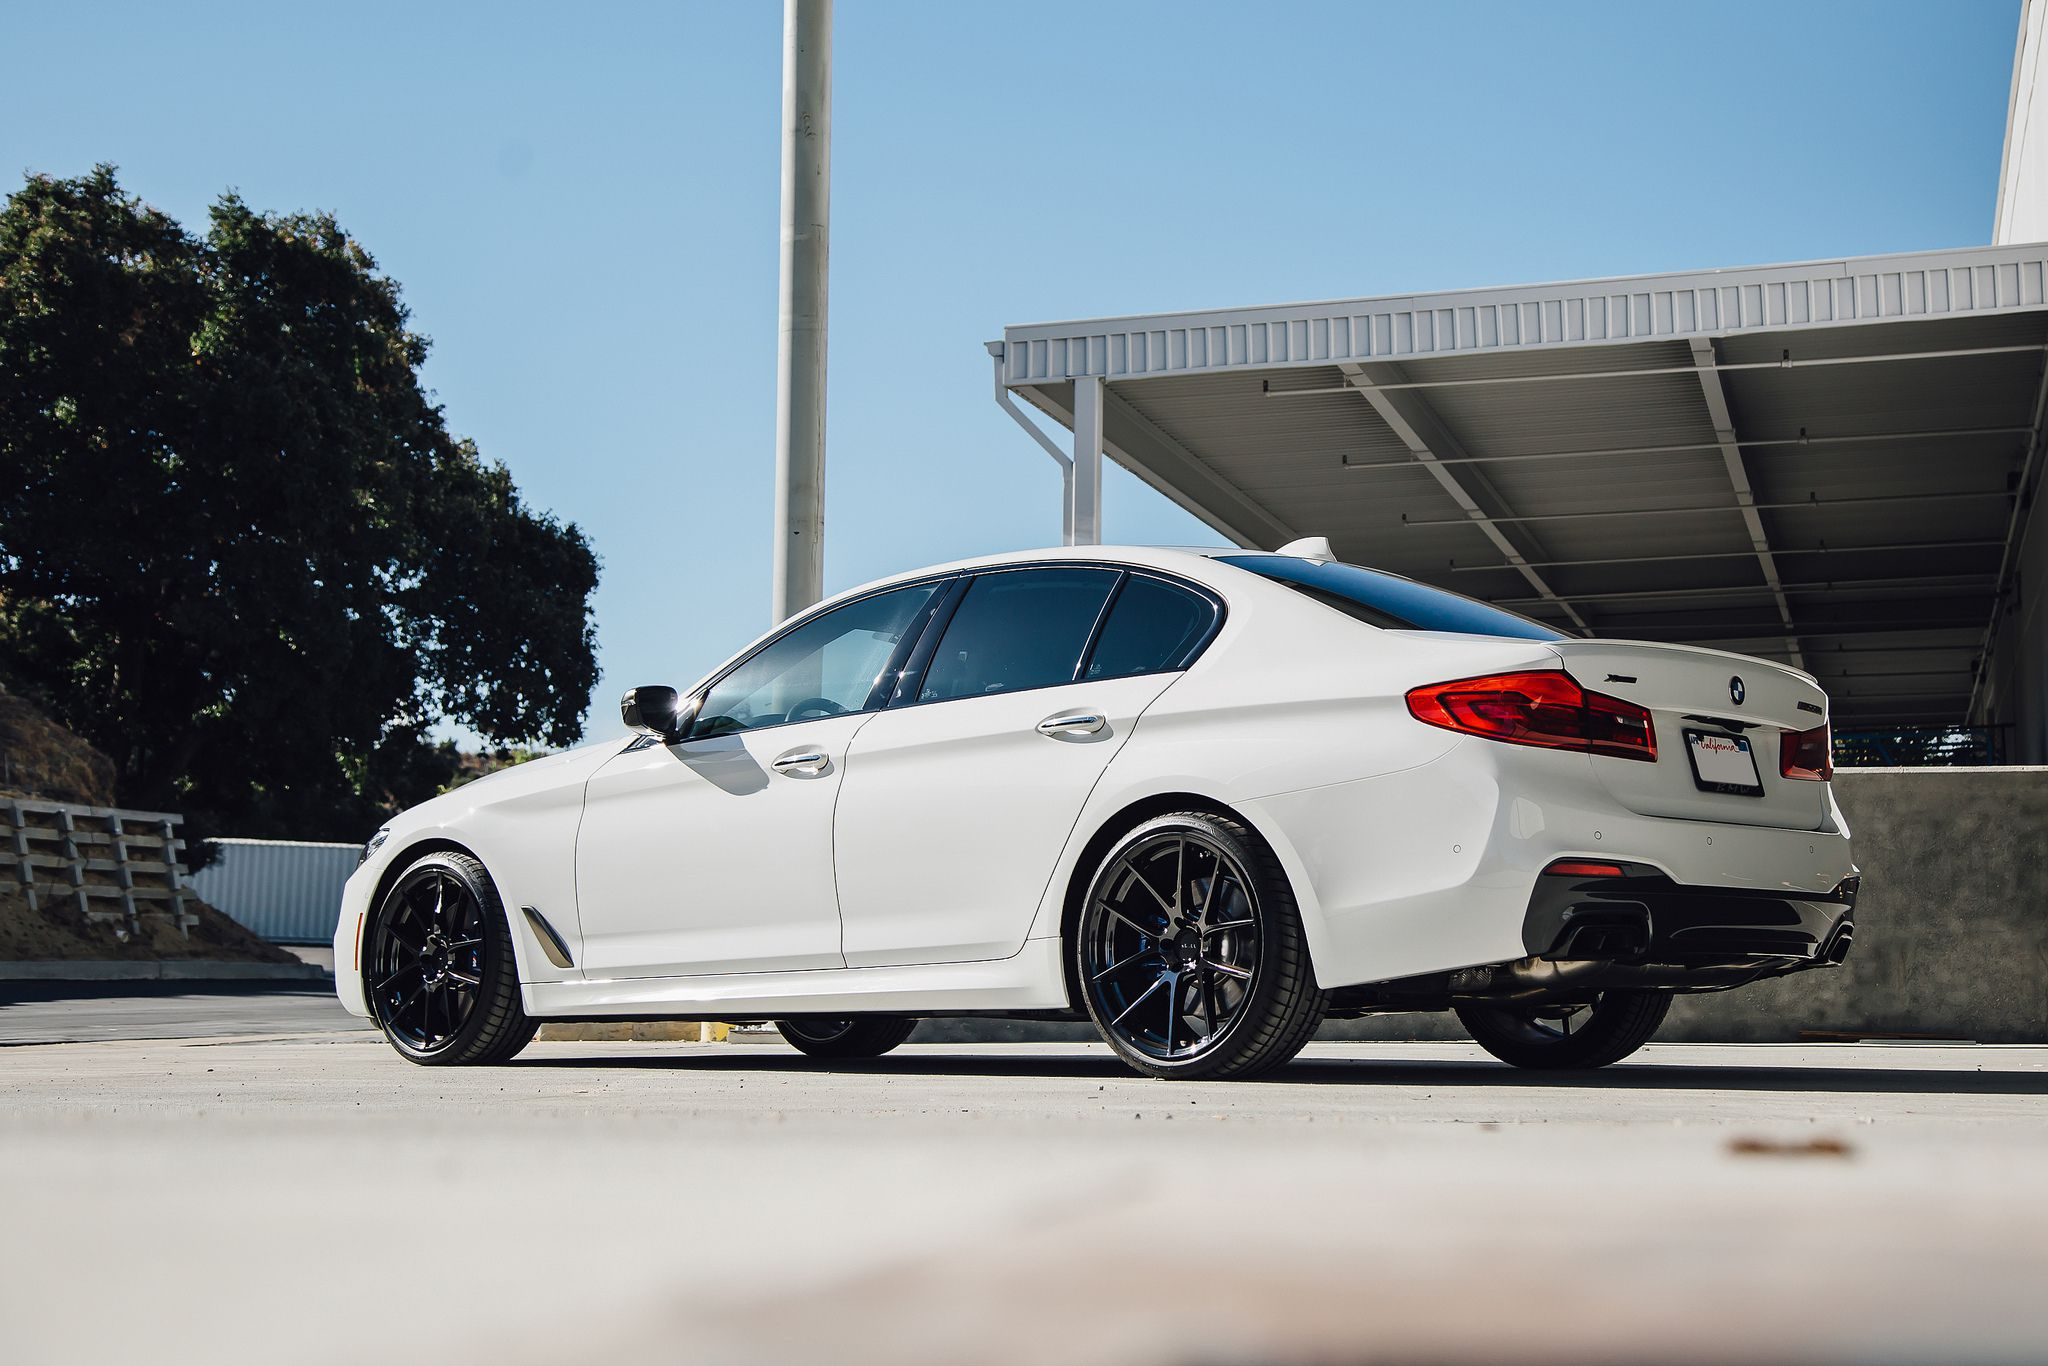 white BMW M550i G30 5 Series 2018 on Beyern Ritz rotary forged gloss black staggered concave wheels